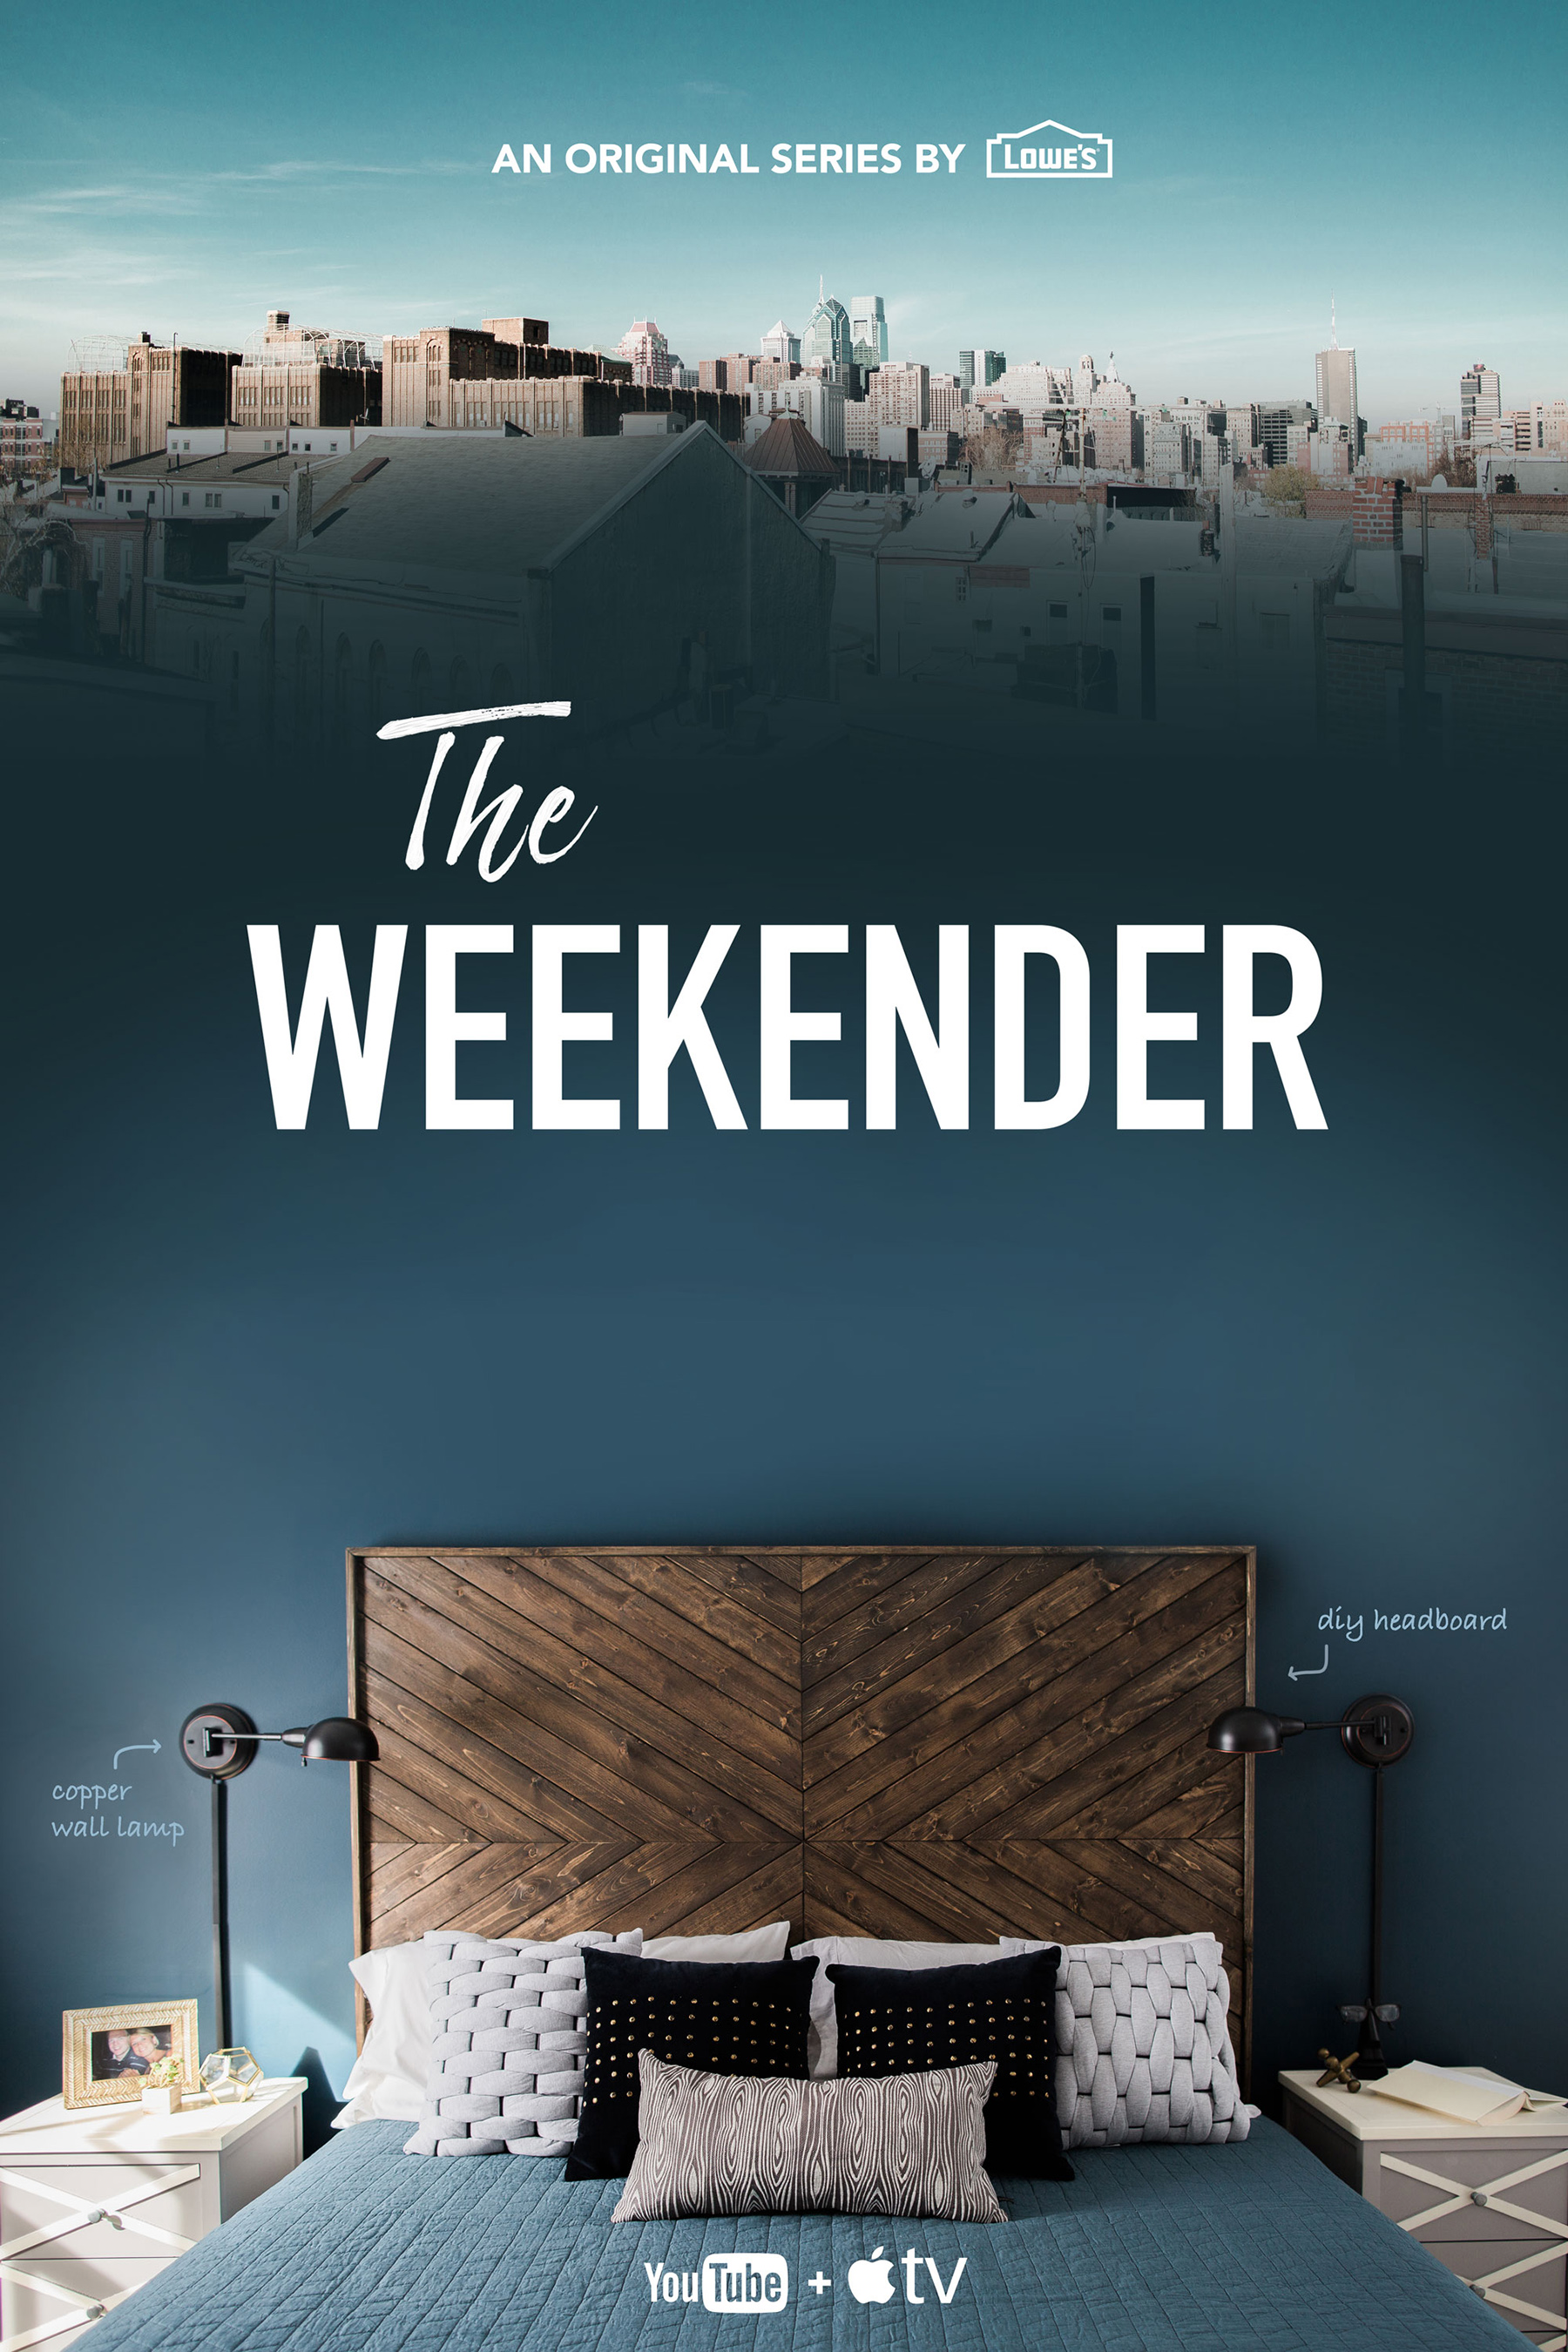 LOWES PREMIERES NEW ORIGINAL SERIES THE WEEKENDER